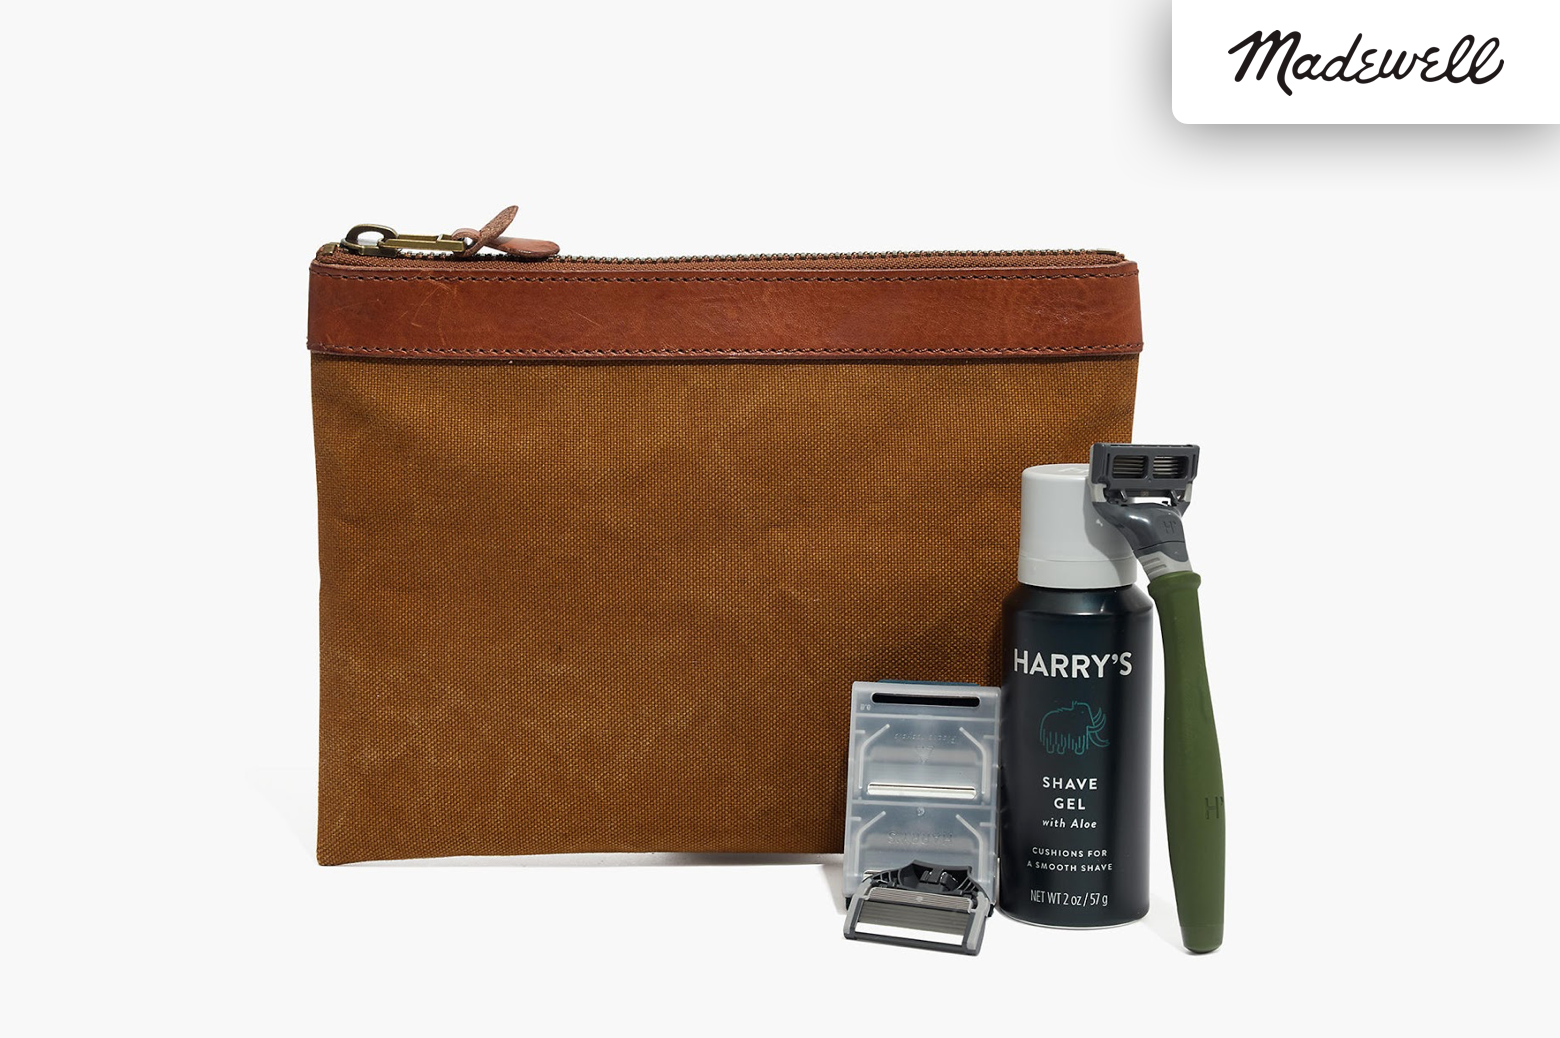 Madewell and Harry's stylish shaving kit